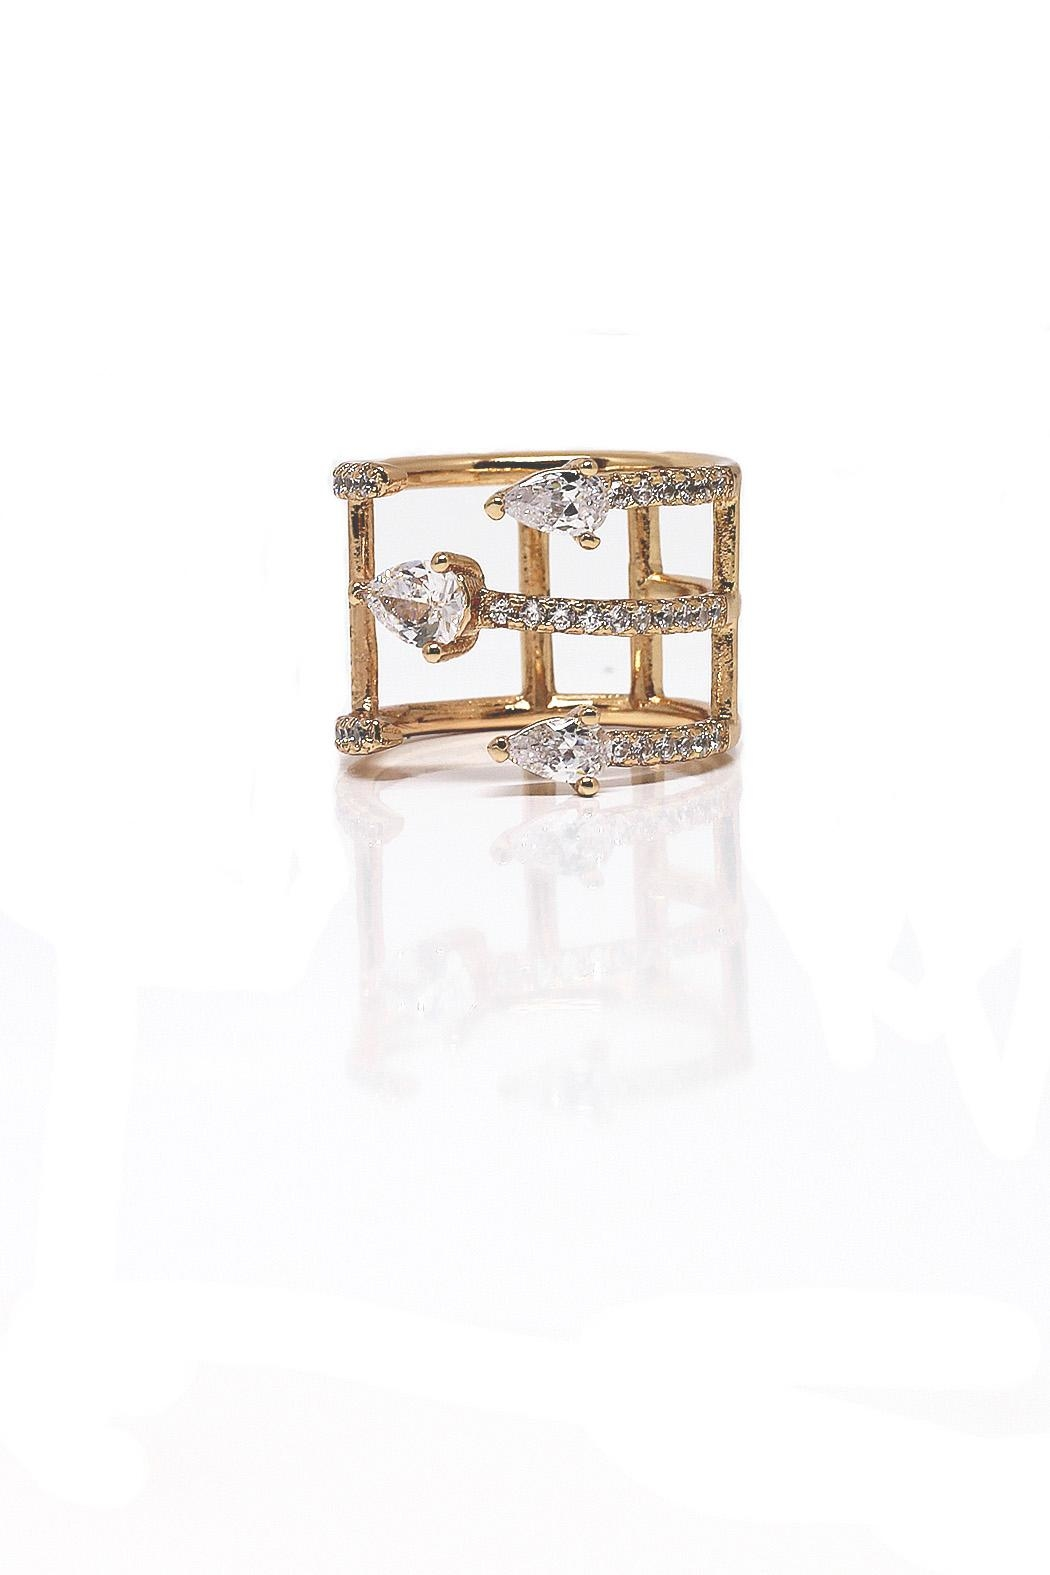 TINK TINK Adjustable Gold Plated Ring - Main Image